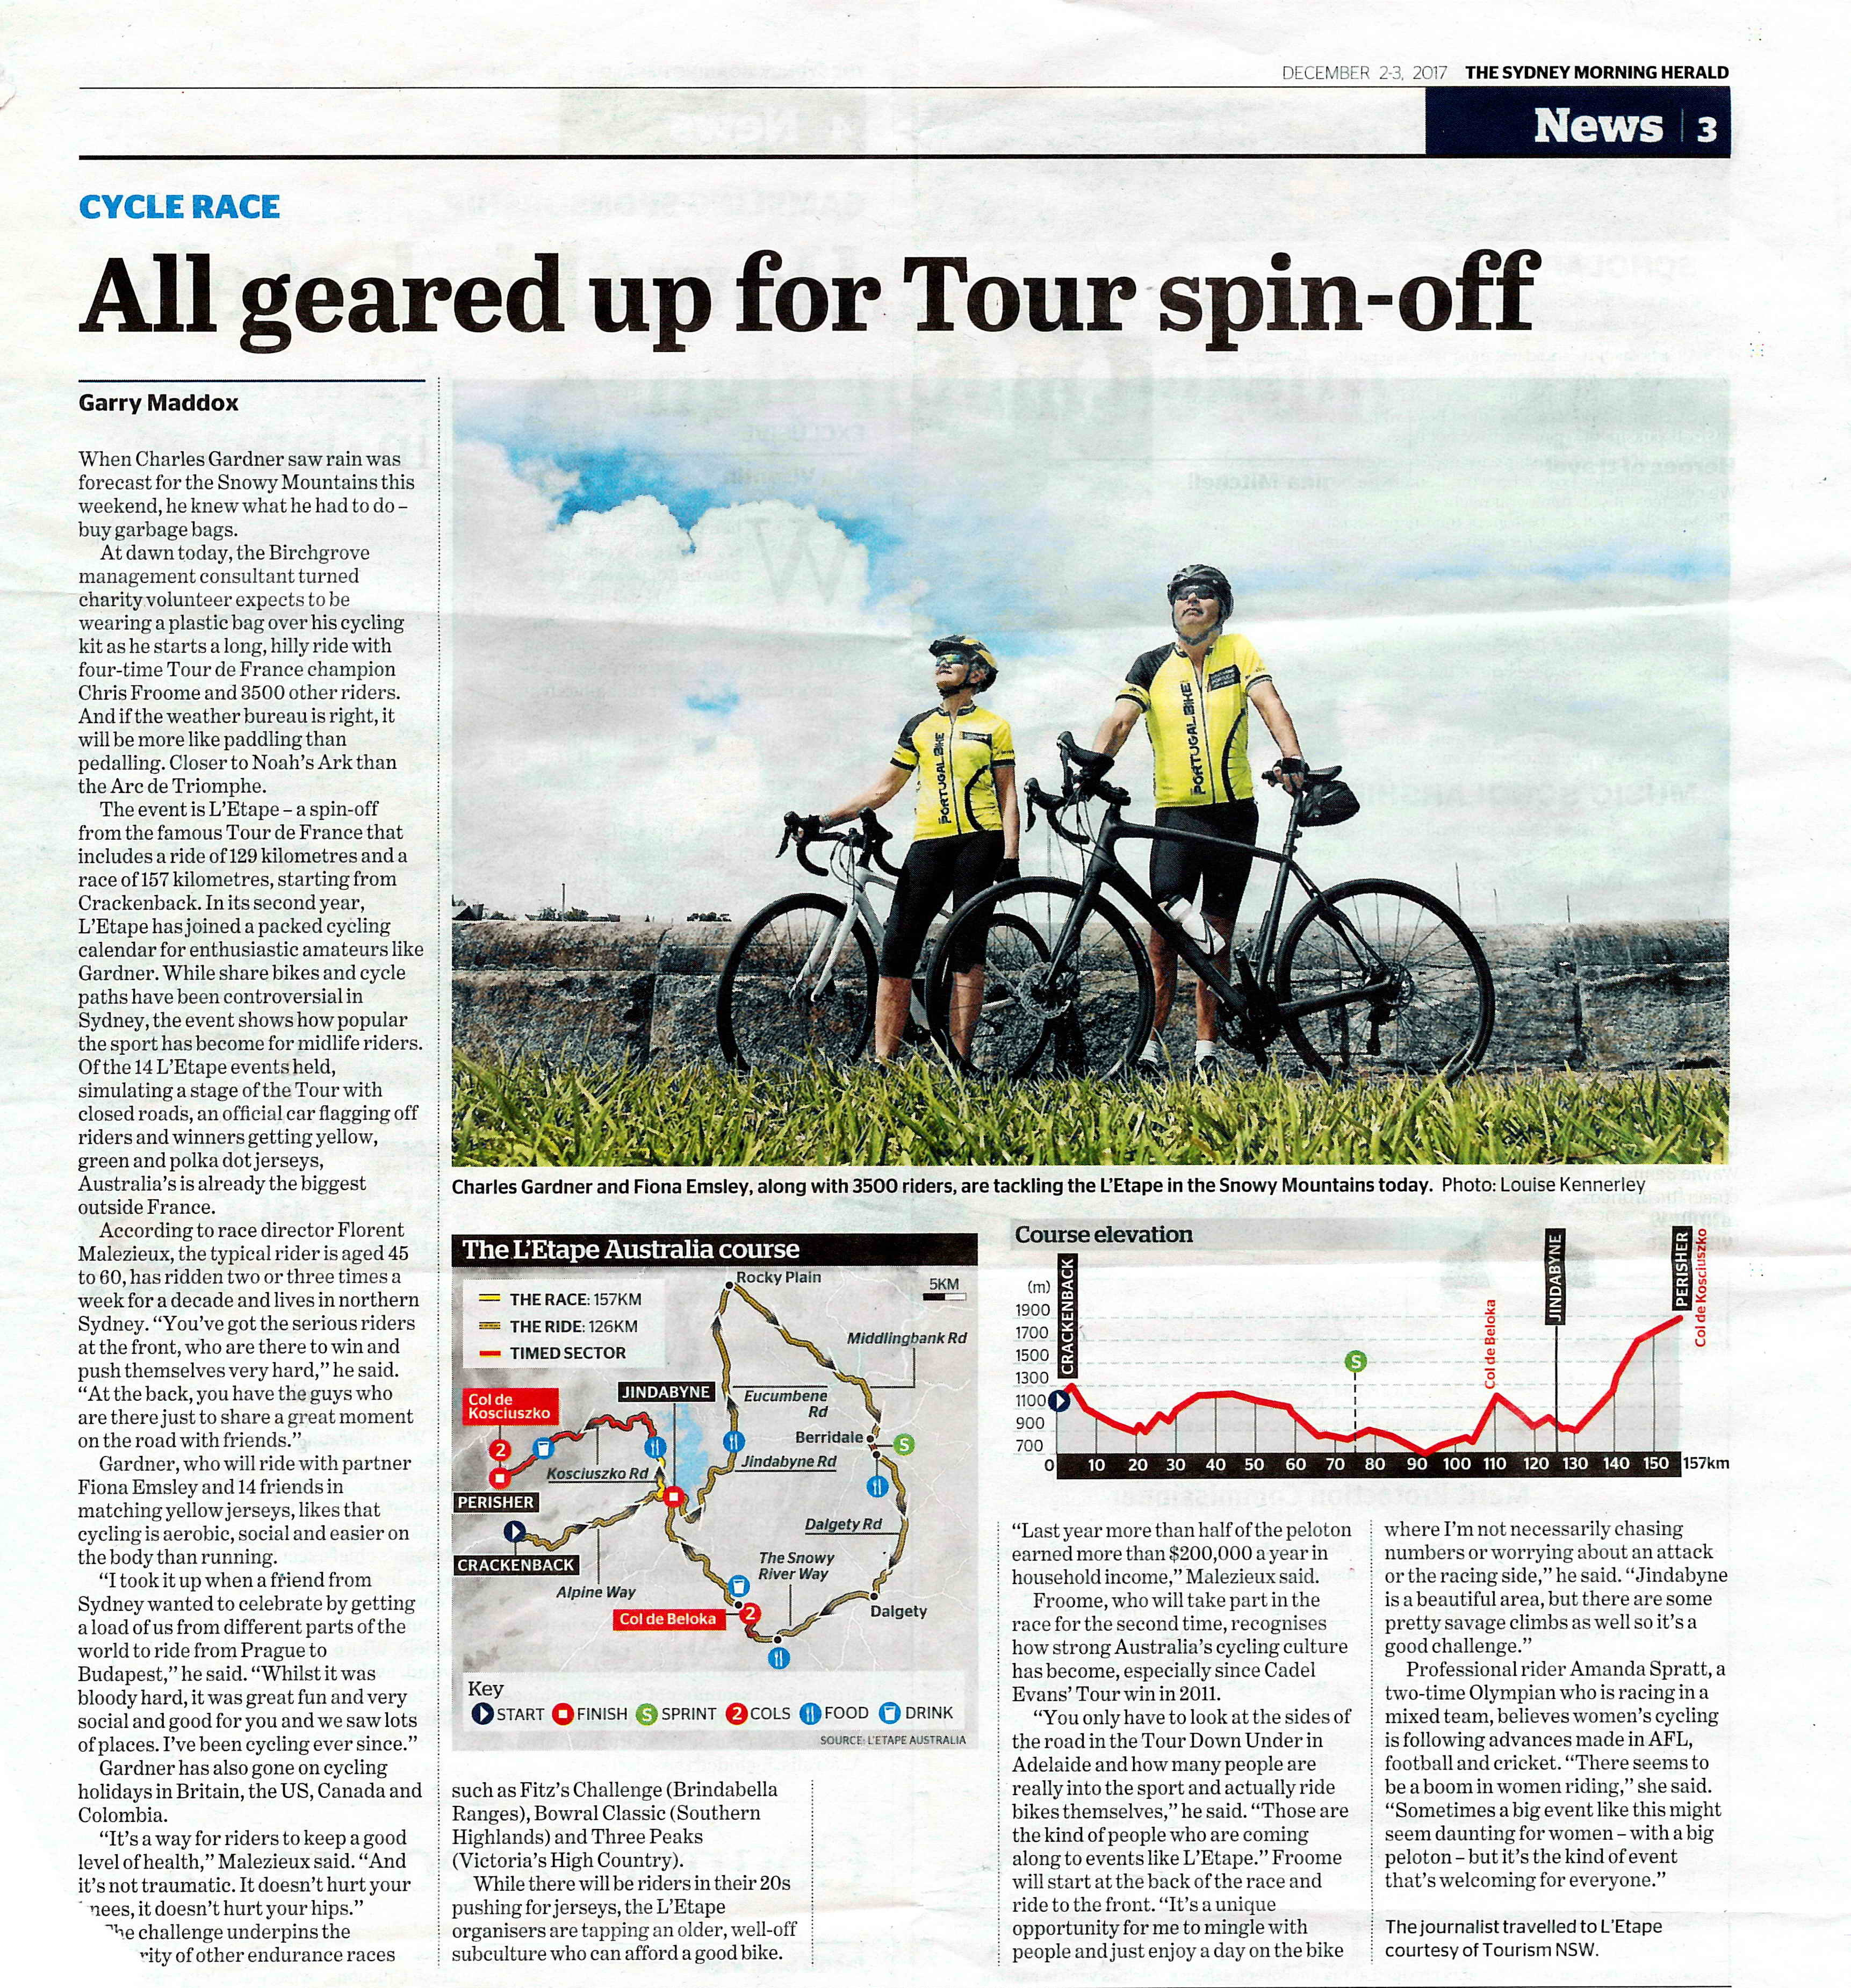 Portugal Bike jerseys on the Sydney Herald